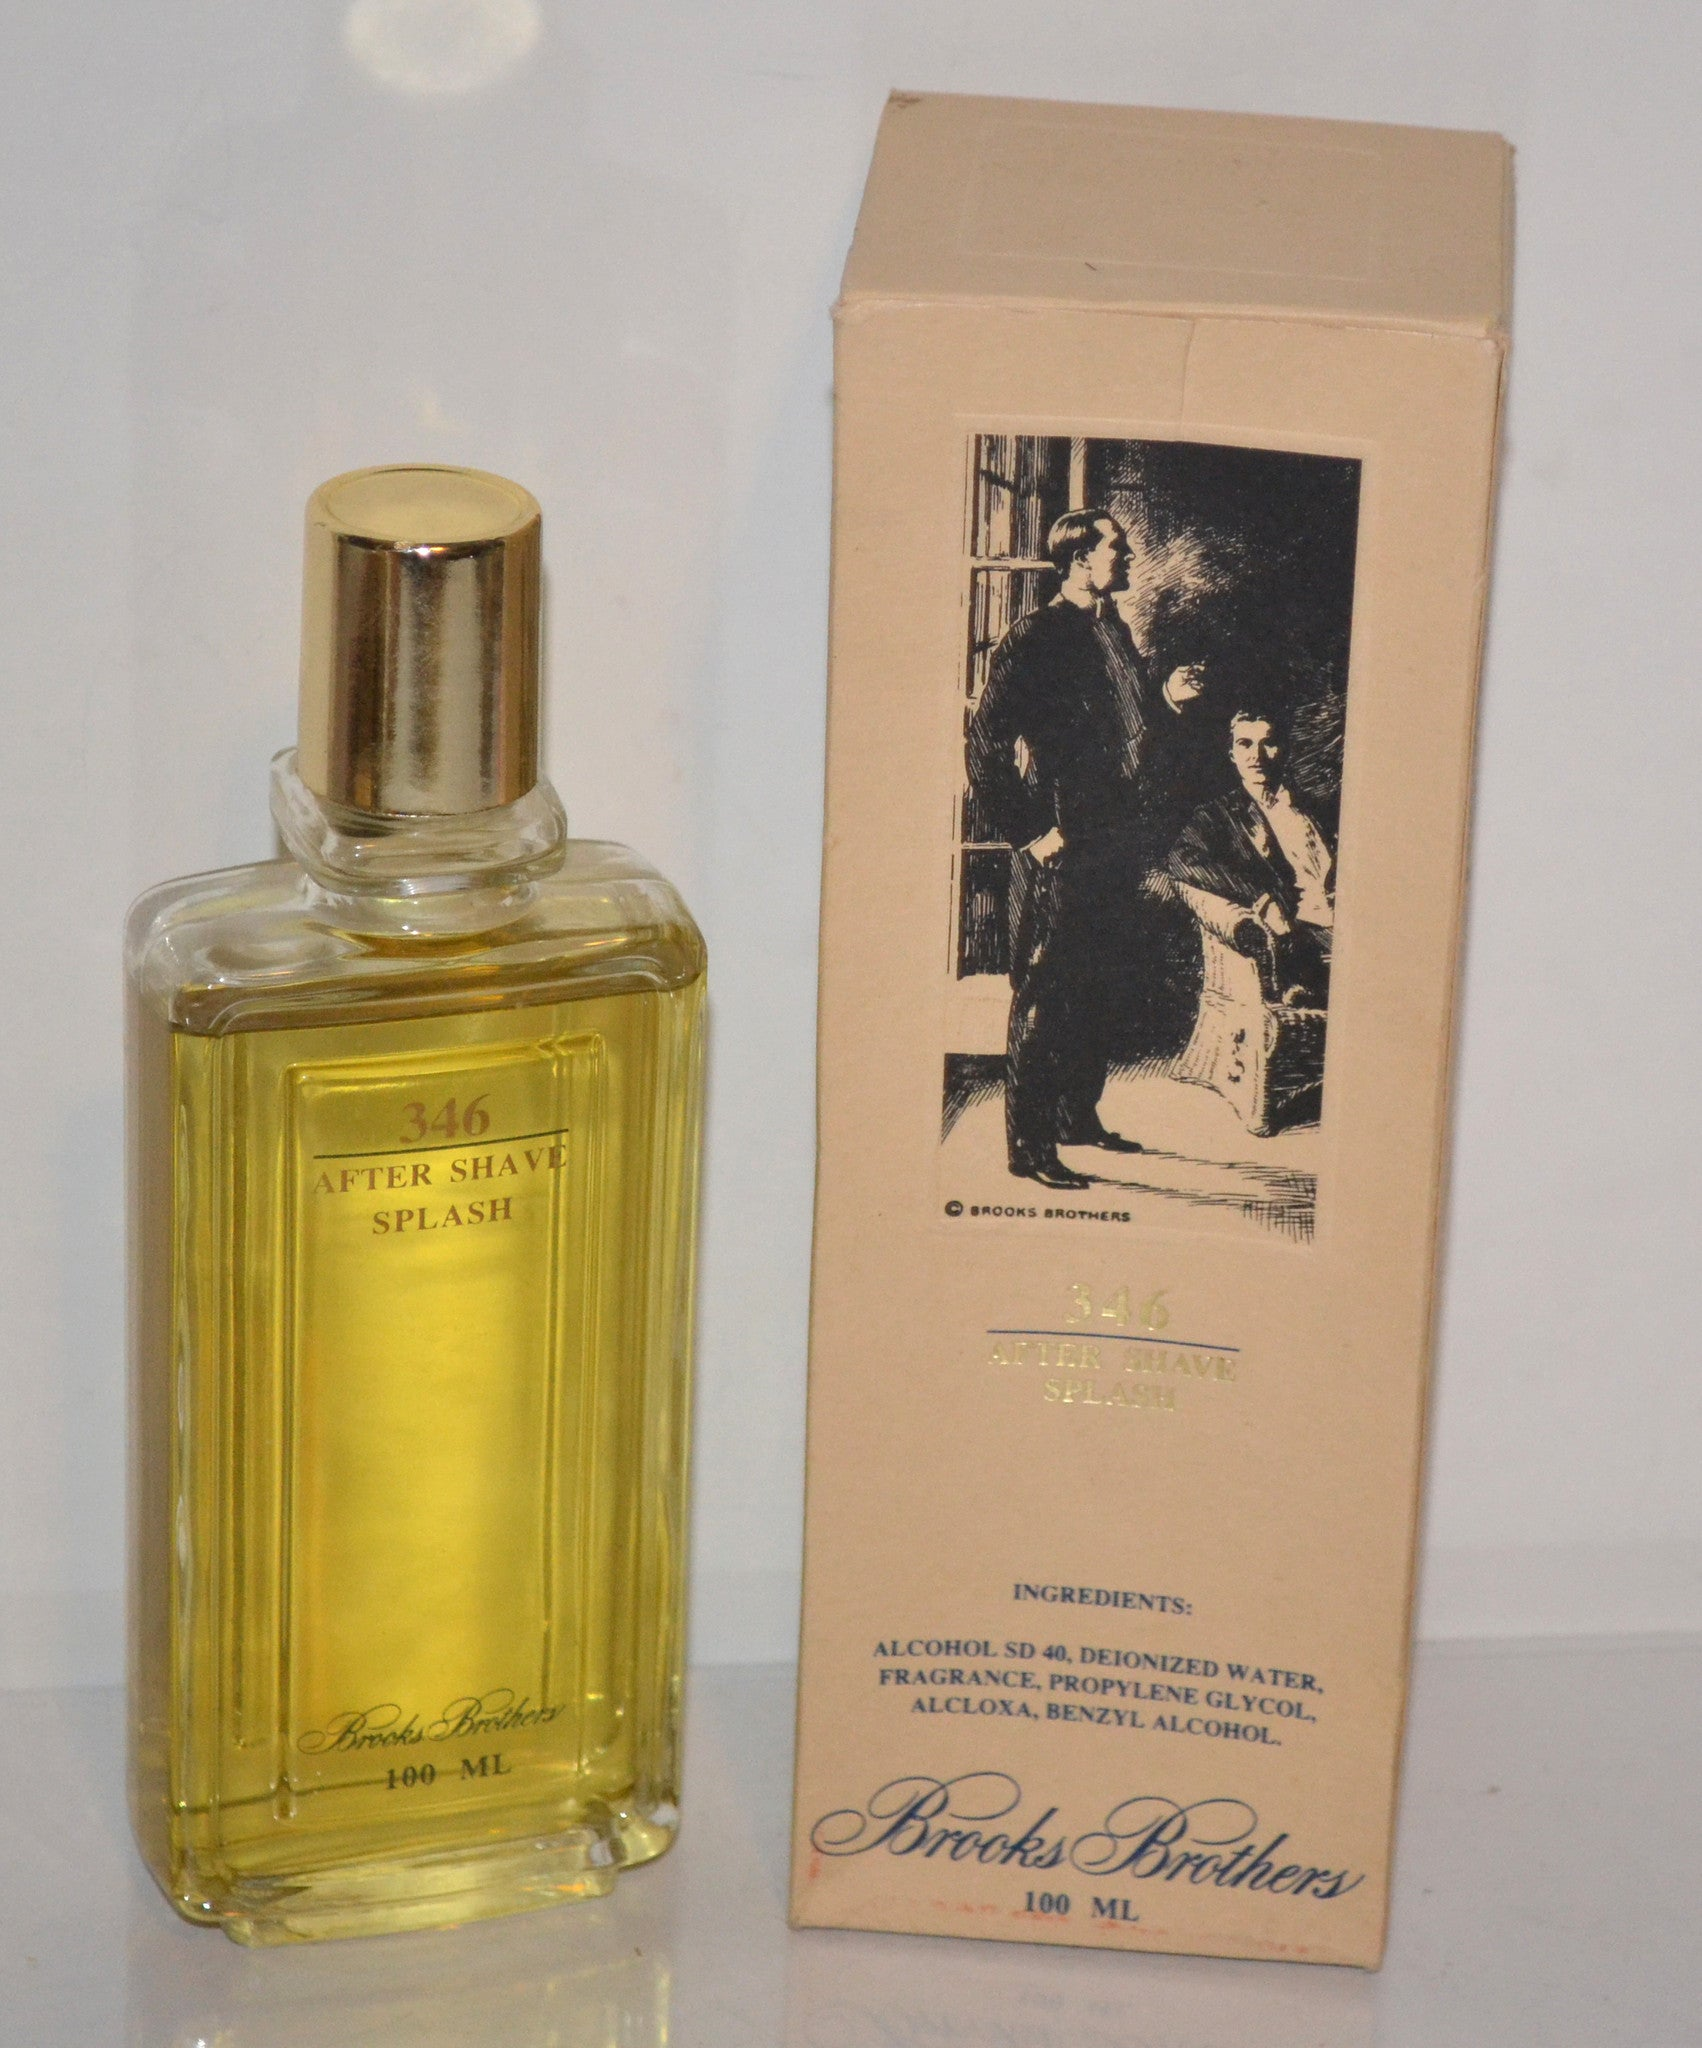 Brooks Brothers 346 After Shave Splash